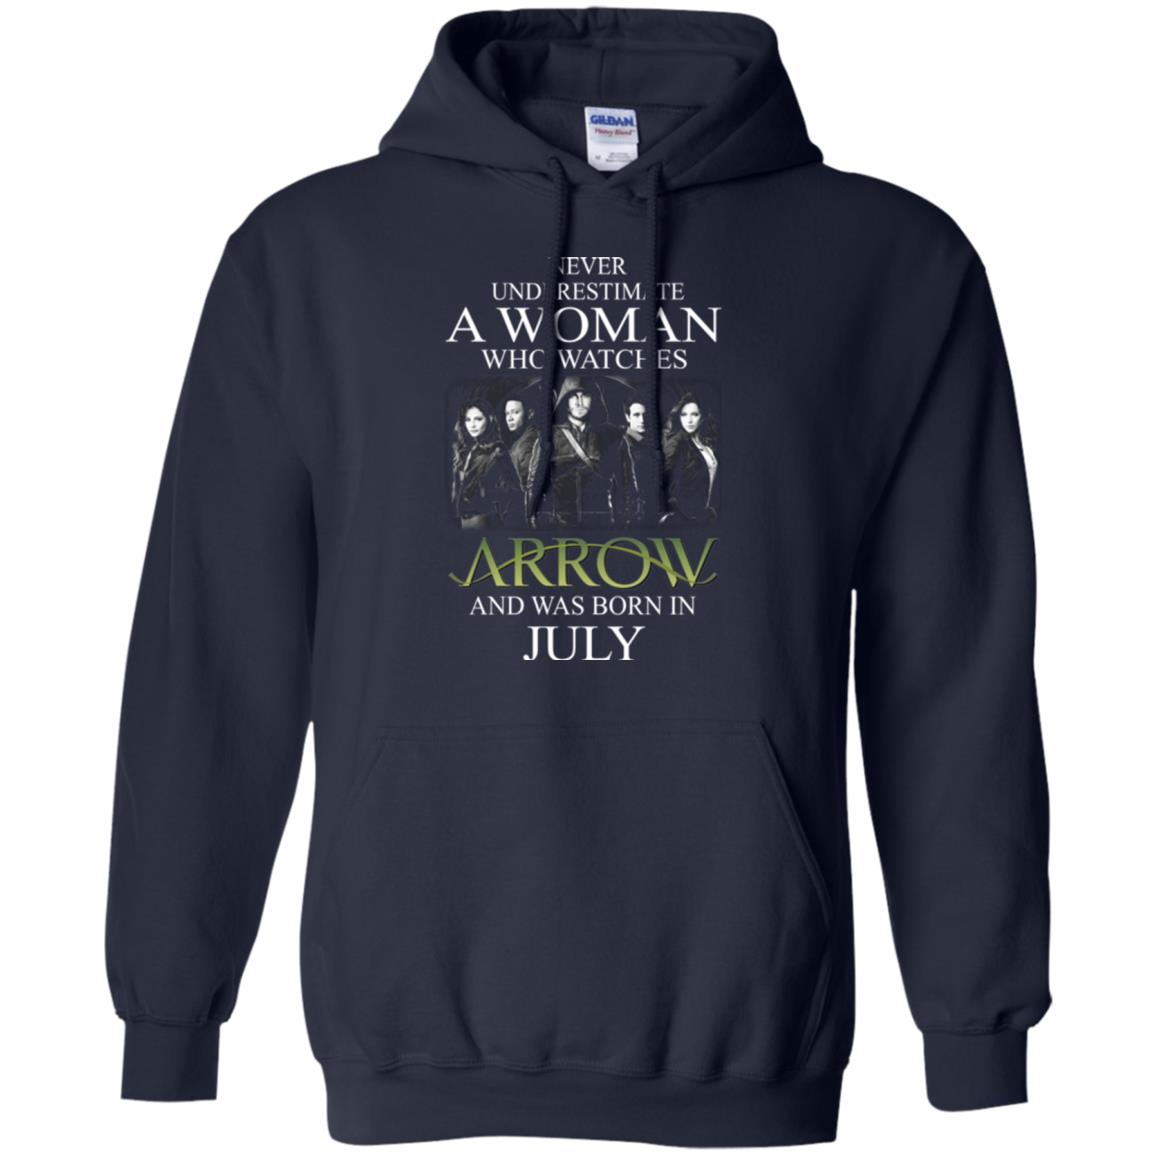 Never Underestimate A woman who watches Arrow and was born in July shirt - image 1523